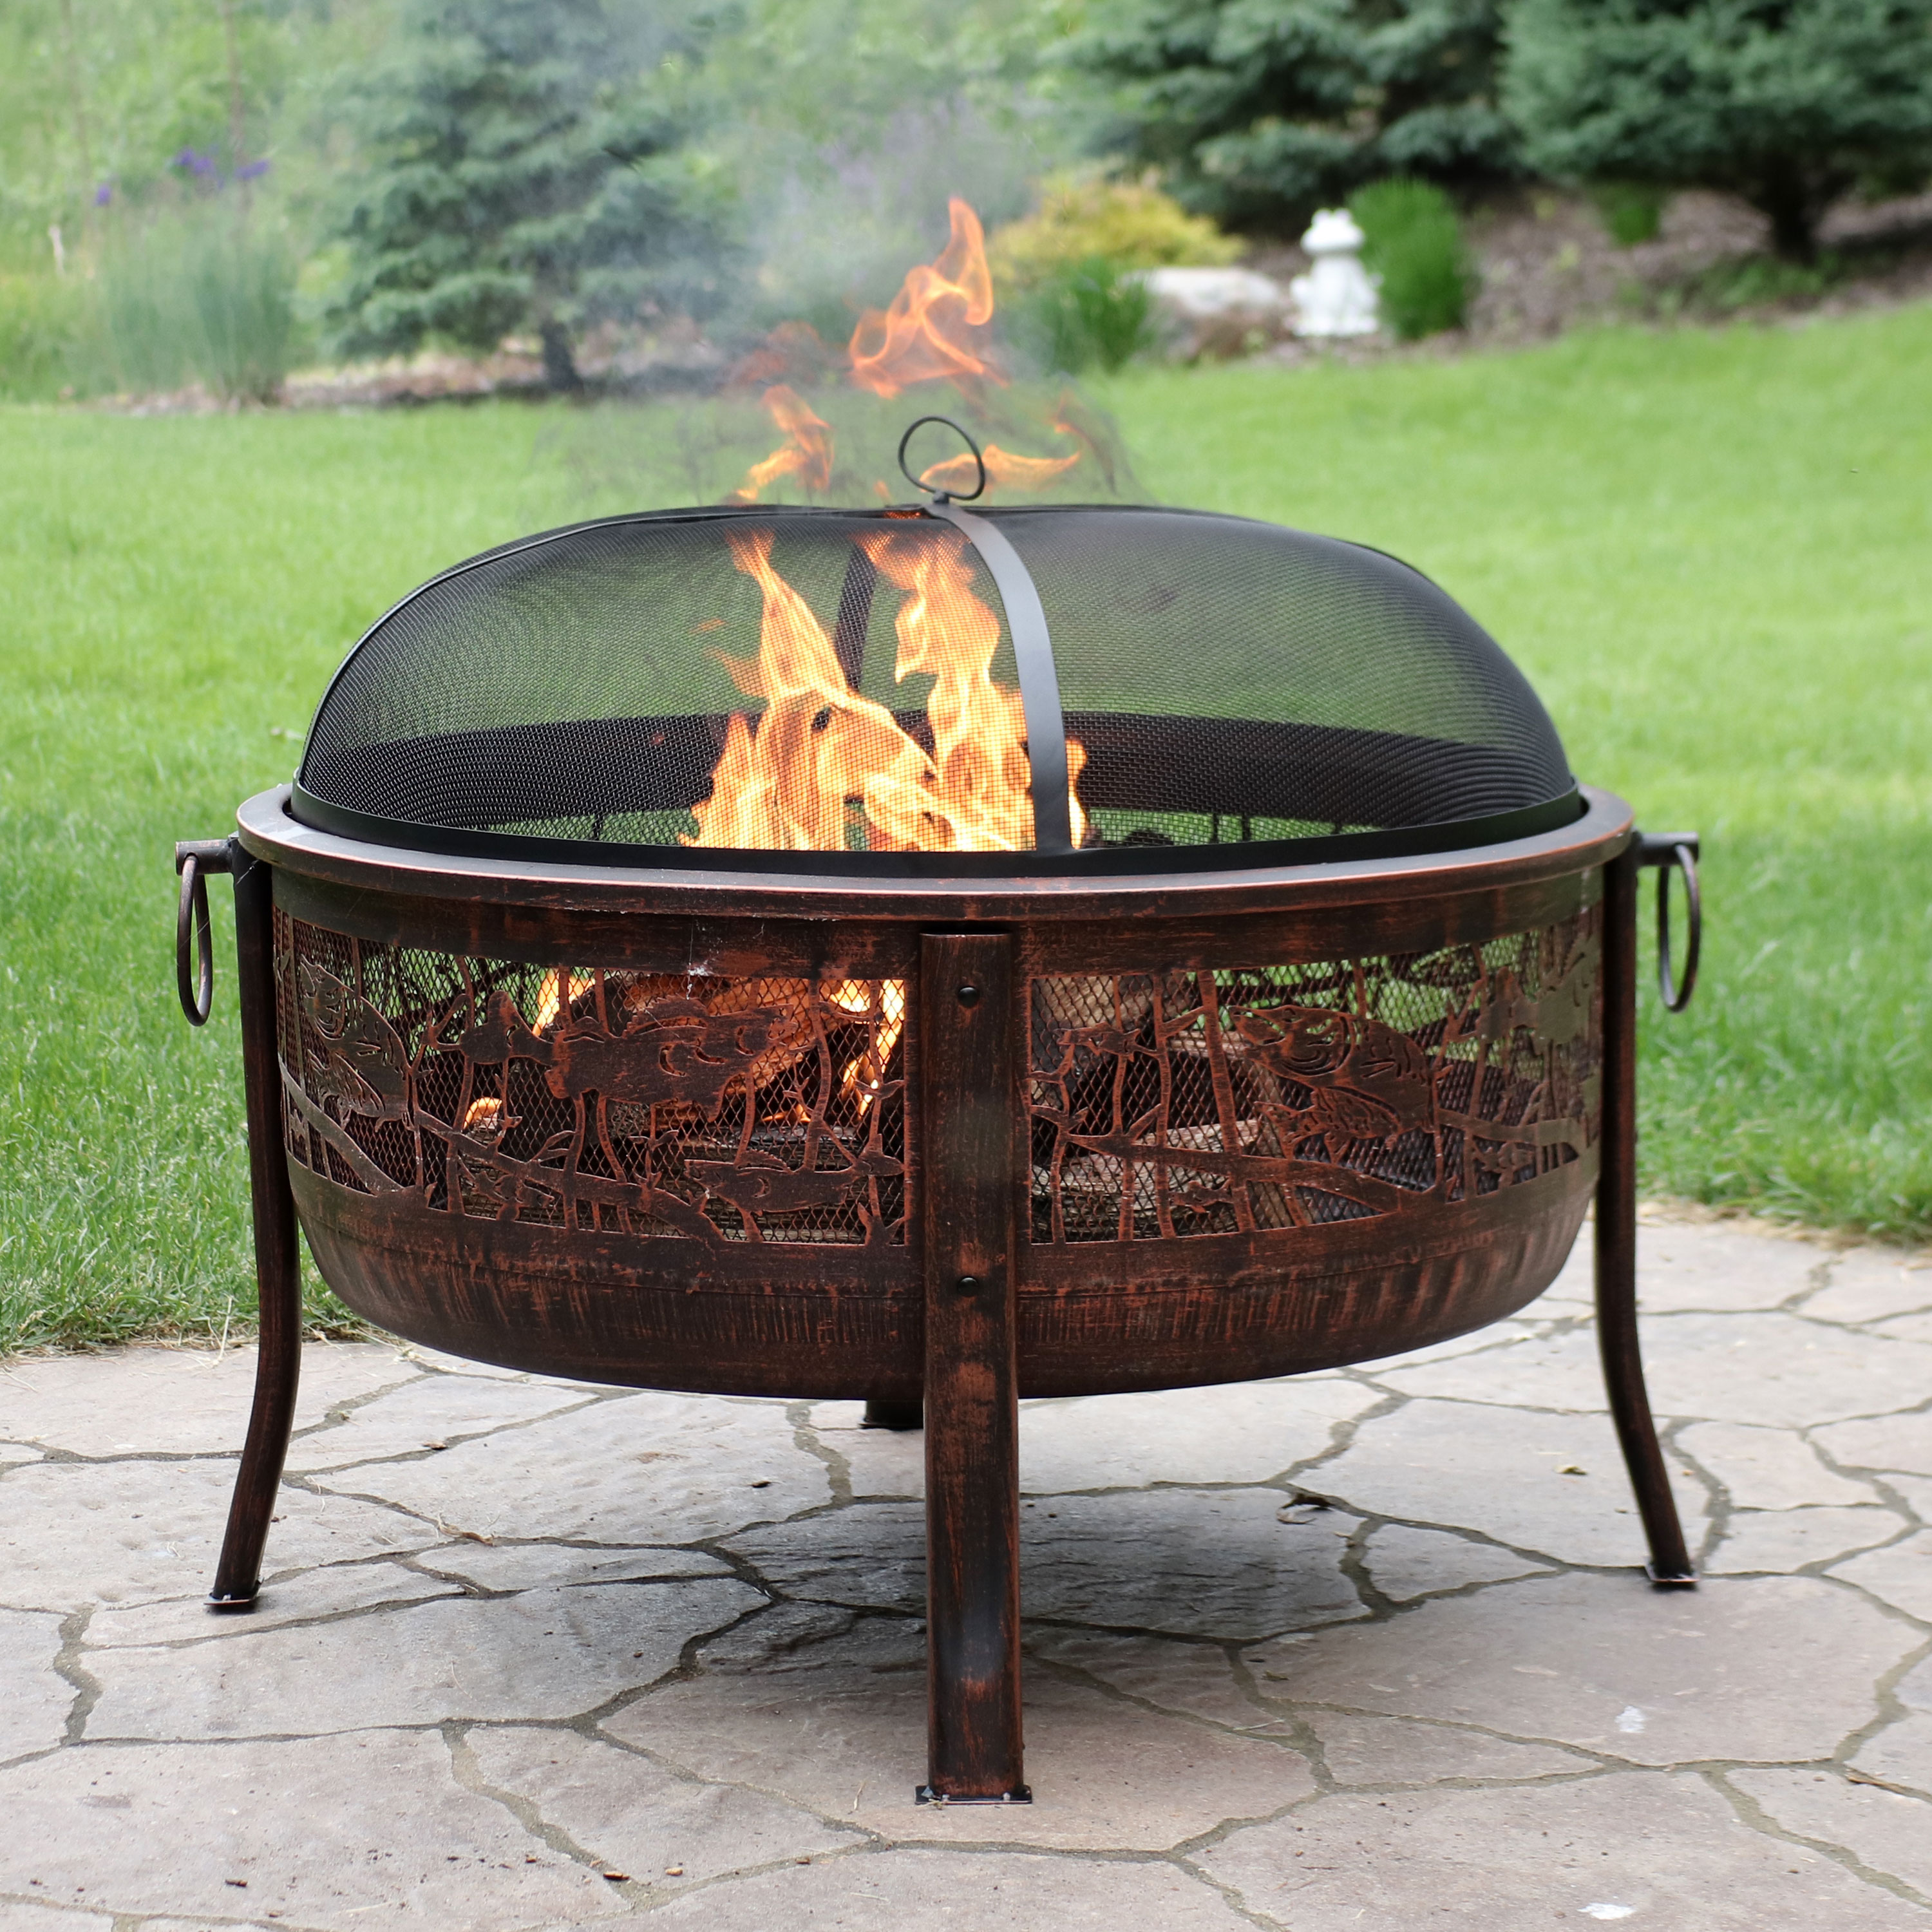 Sunnydaze 0rthwoods Fishing Fire Pit, 30-Inch Diameter, with Spark Screen